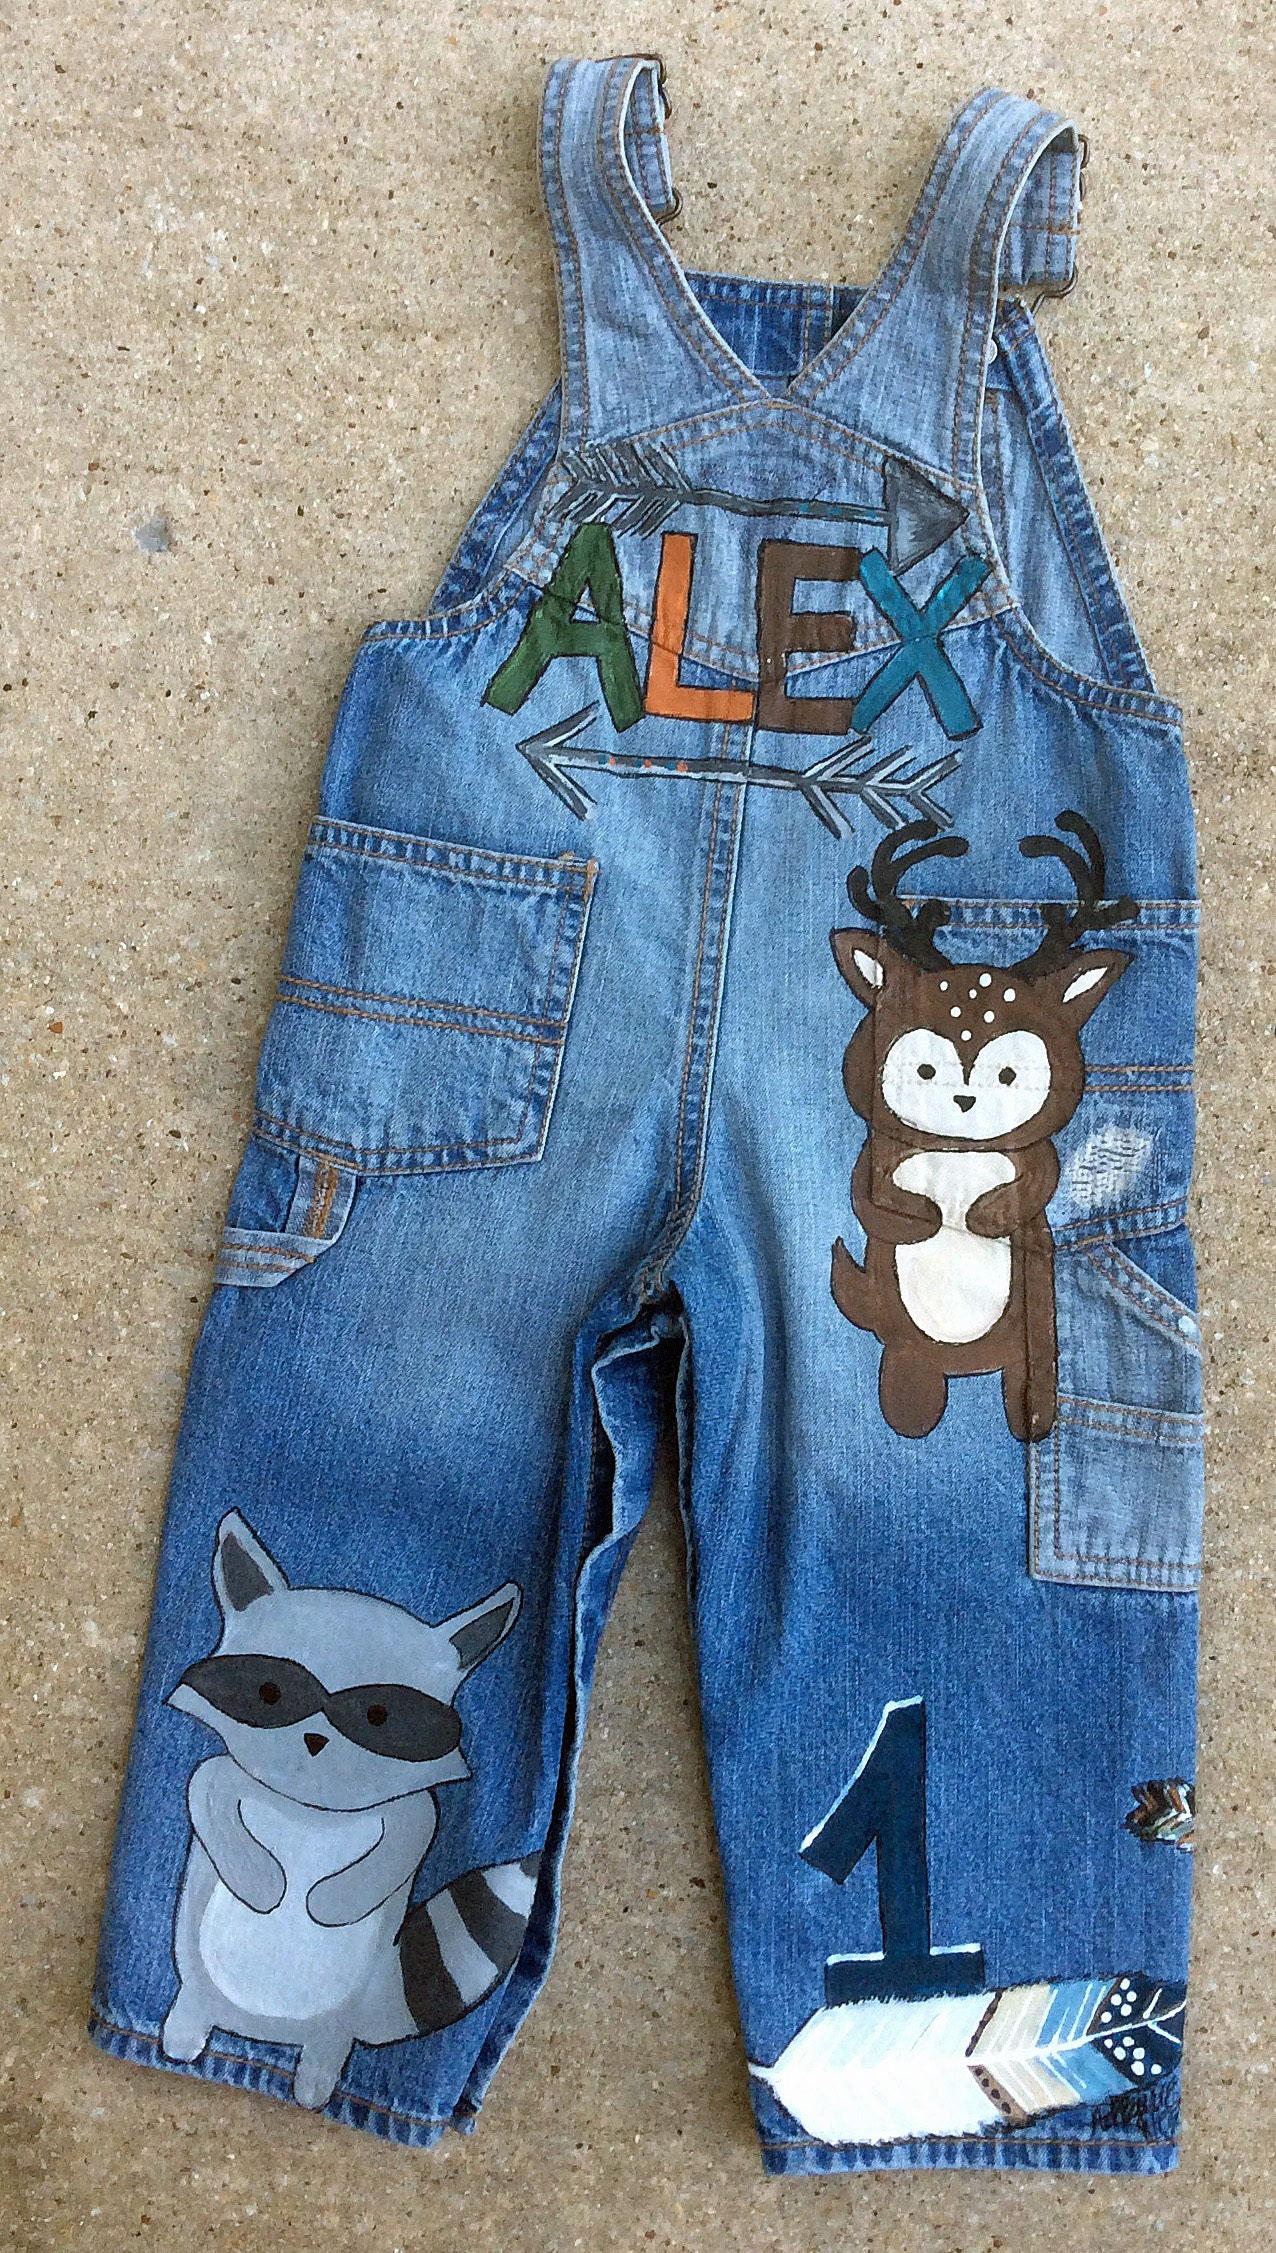 Vintage Overalls & Jumpsuits Denim Overalls Toddler Size Wild One, Woodland Forest Animal Birthday Party Clothing, Trendy Boho Clothes, Gift For Grandson, Son, Girls $103.00 AT vintagedancer.com